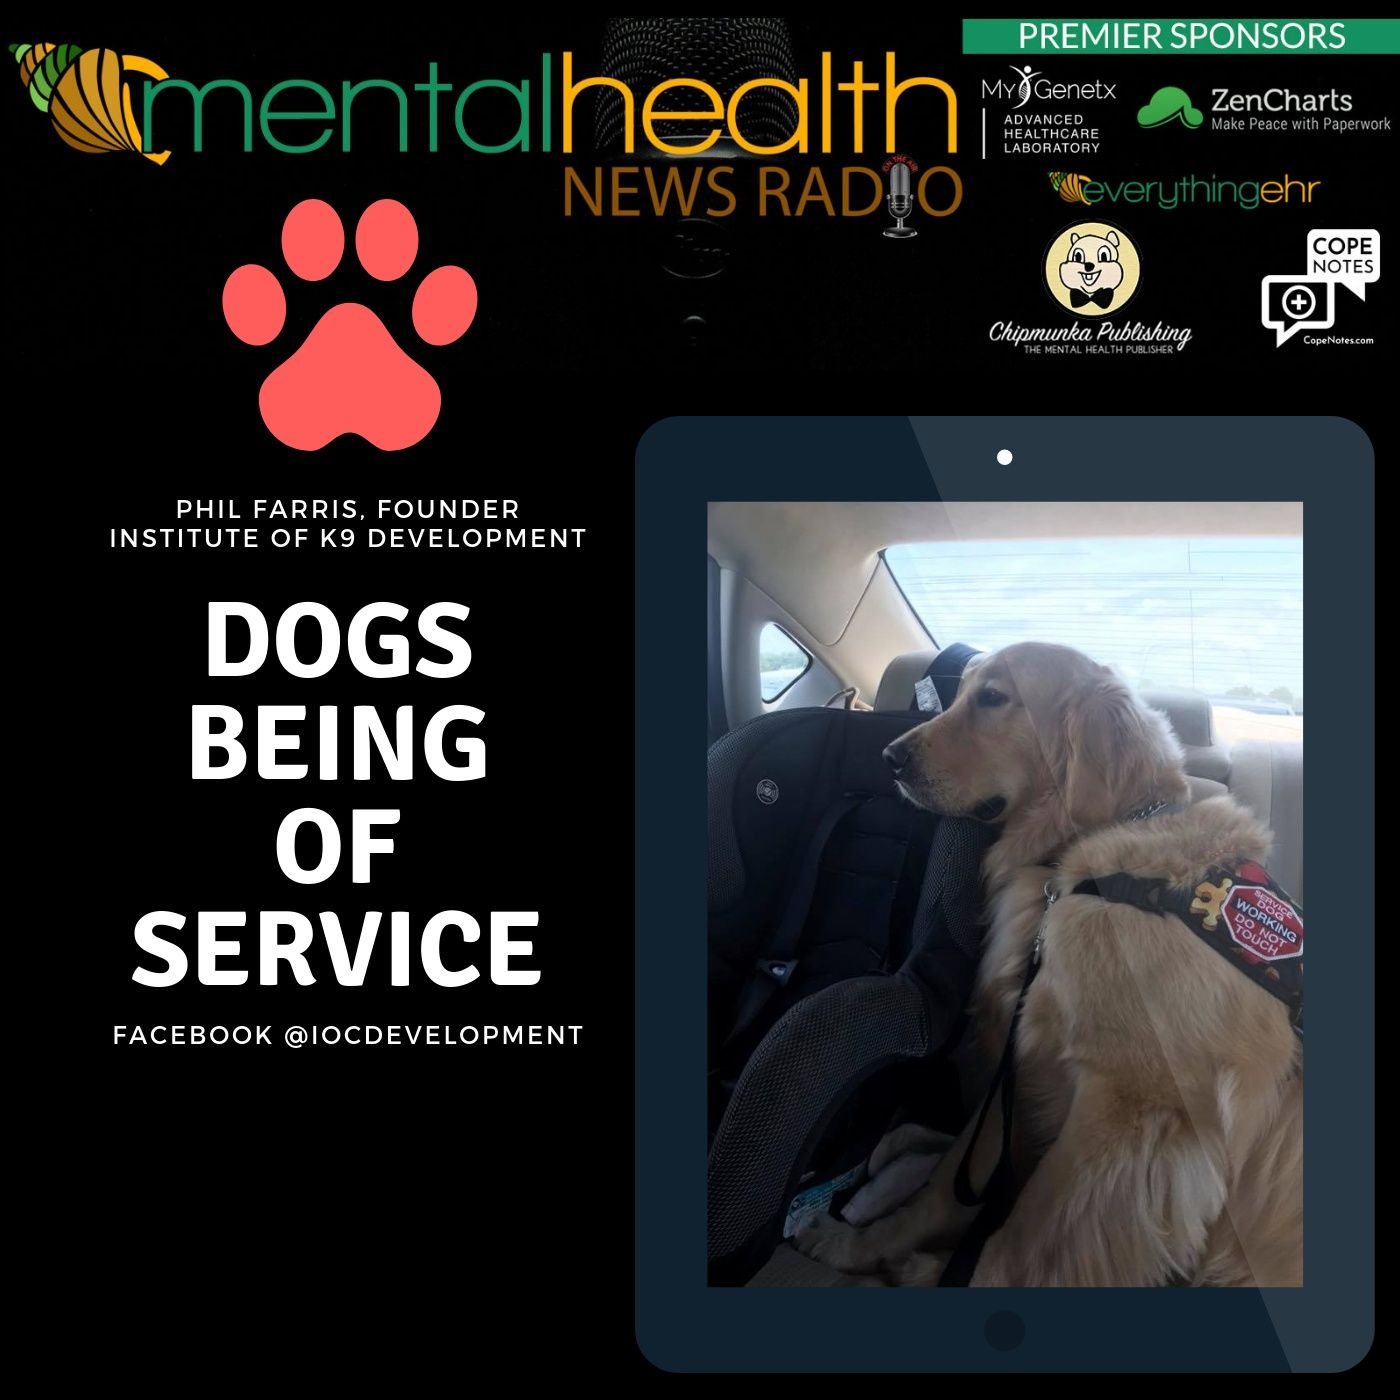 Mental Health News Radio - Dogs Being of Service with Trainer Phil Farris